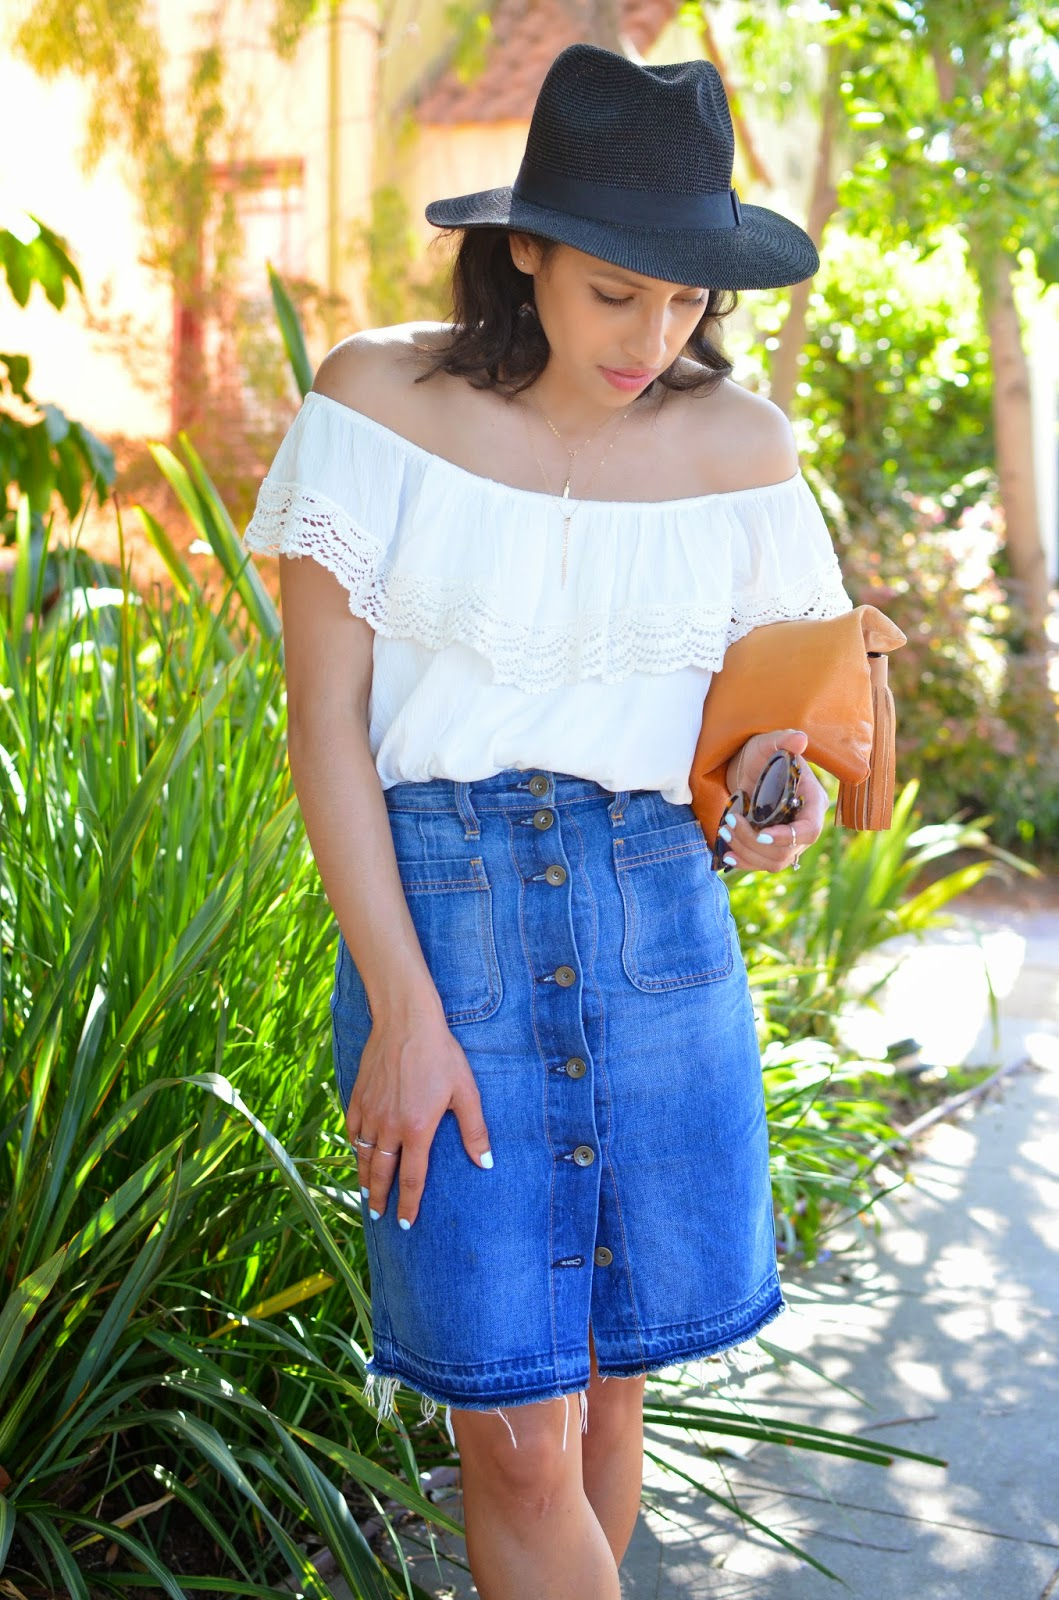 Rag & bone, denim high waisted skirt, denim skirt, off the shoulder top, spring style, Venice, Venice beach, LA, slide sandals, Matisse, DSW, black straw fedora,